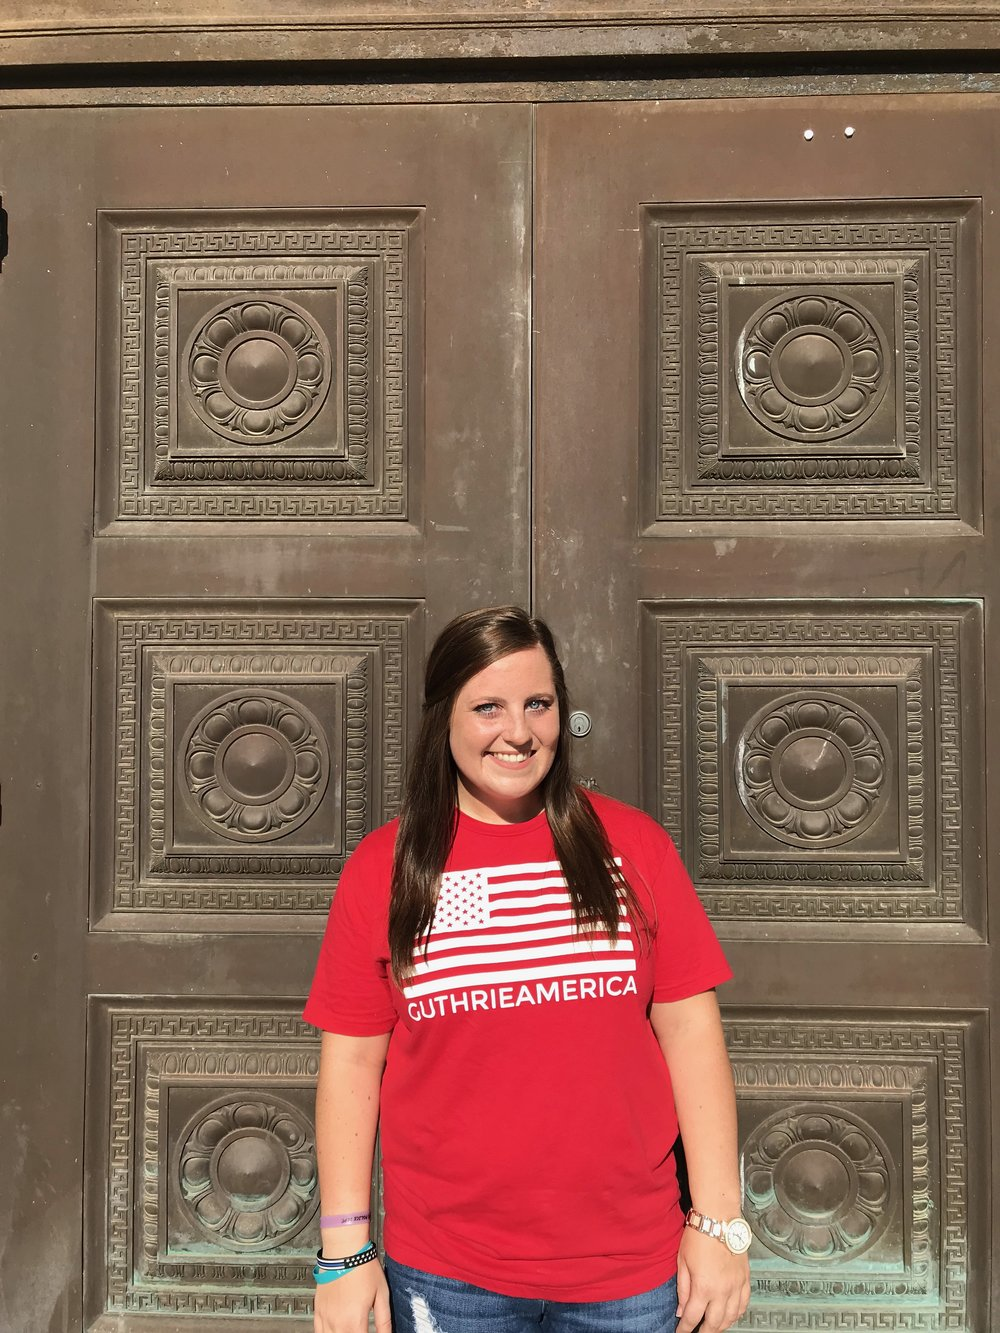 mollie Swartzbaugh at temple in guthrie in a guthrie america tee.jpg